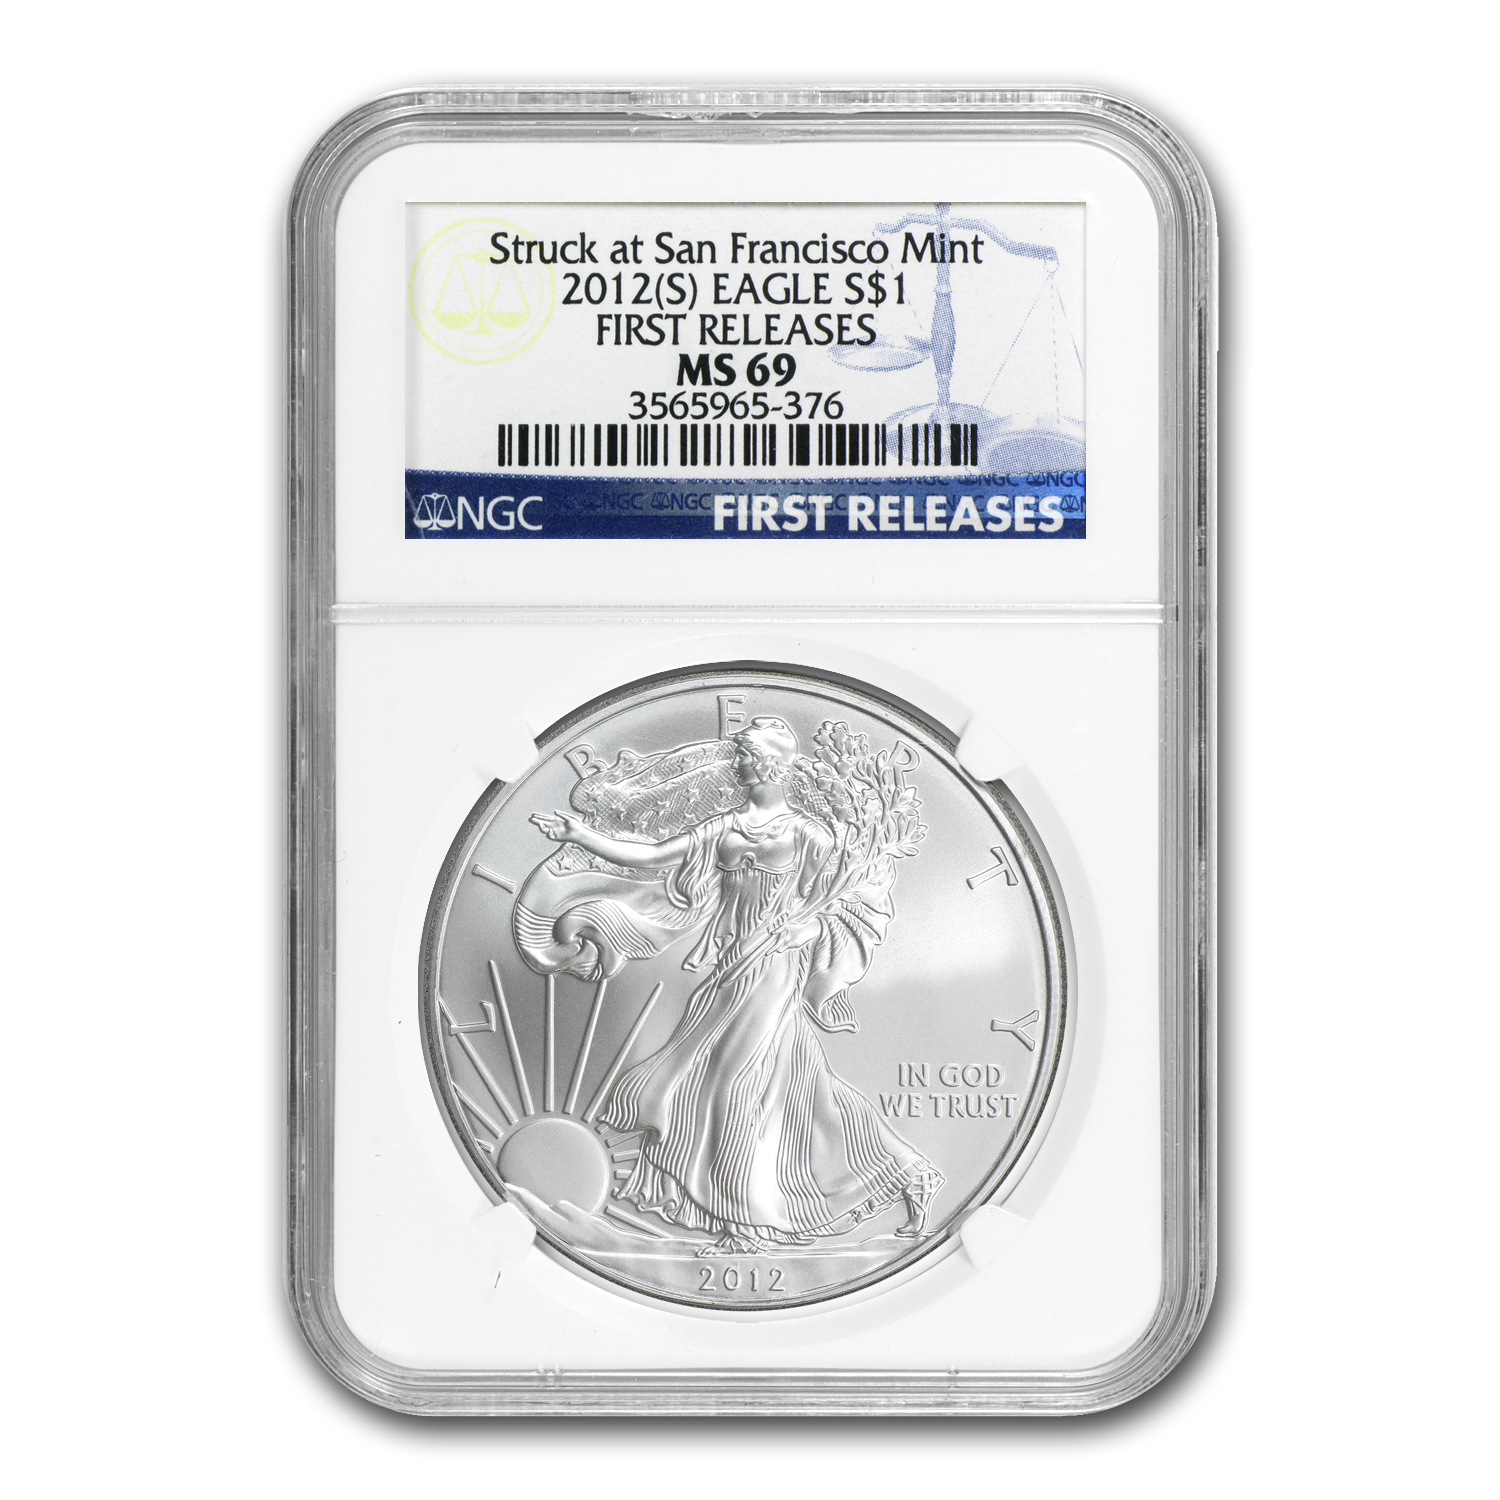 2012 (S) Silver American Eagle - MS-69 NGC - First Release